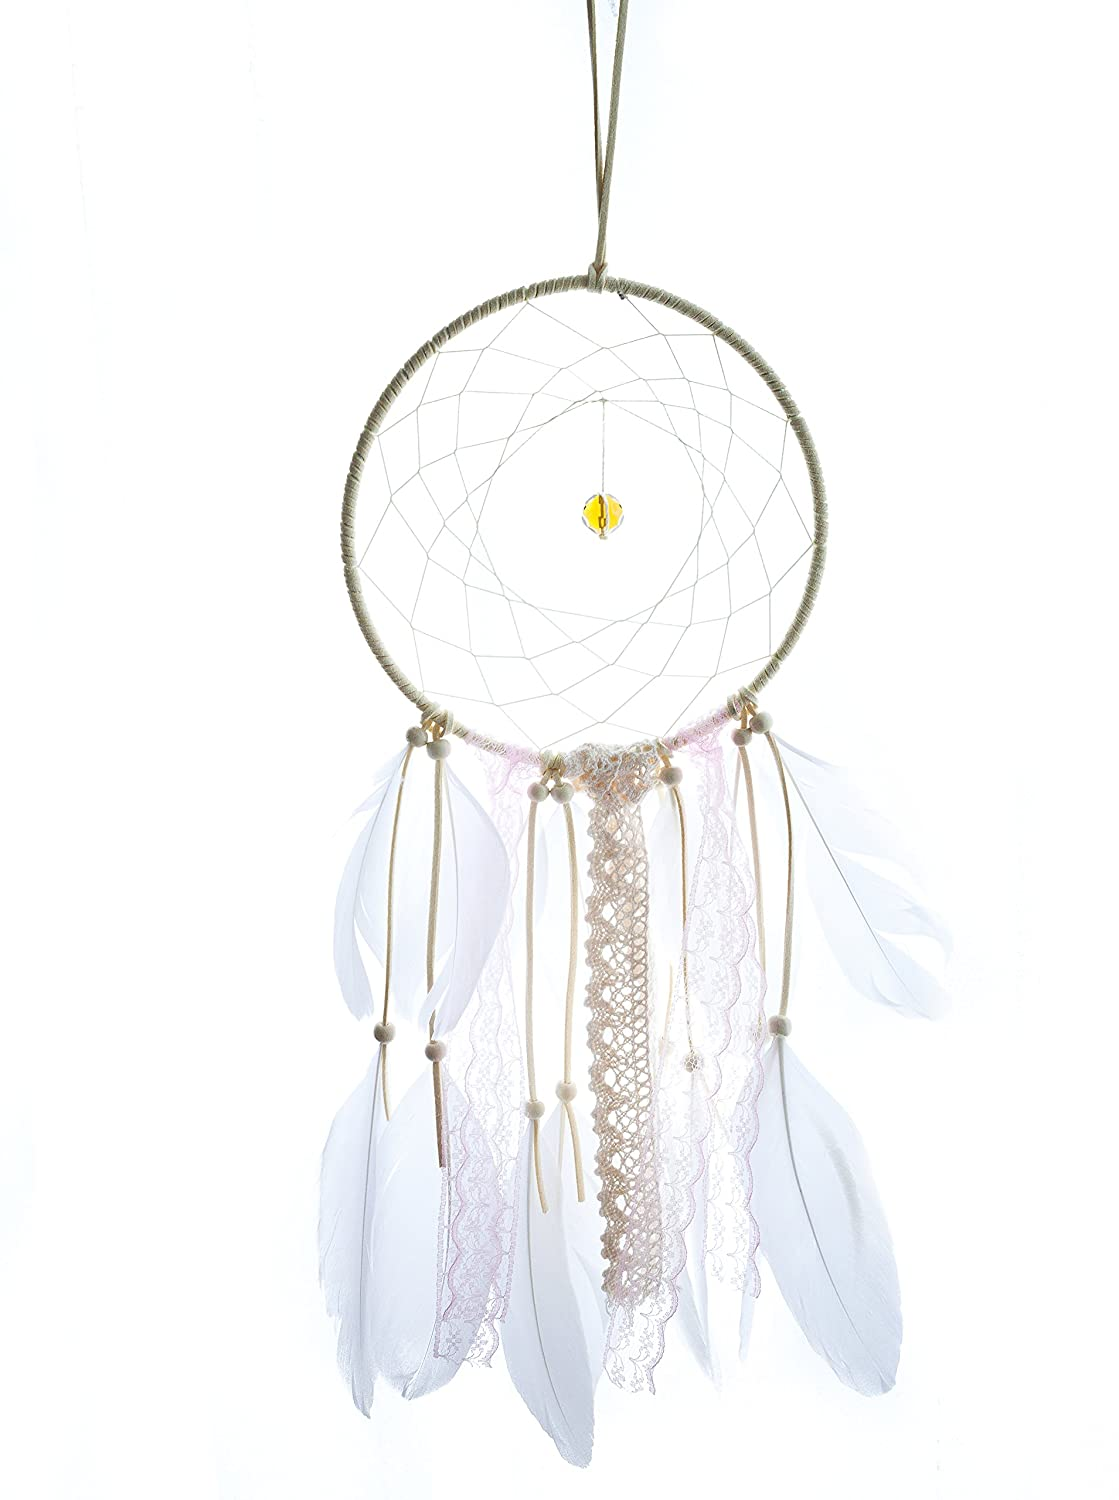 RONG FA 2018 New Dreamcatcher decorations children room decorations Ningbo Rong FA Toys Co. Ltd.